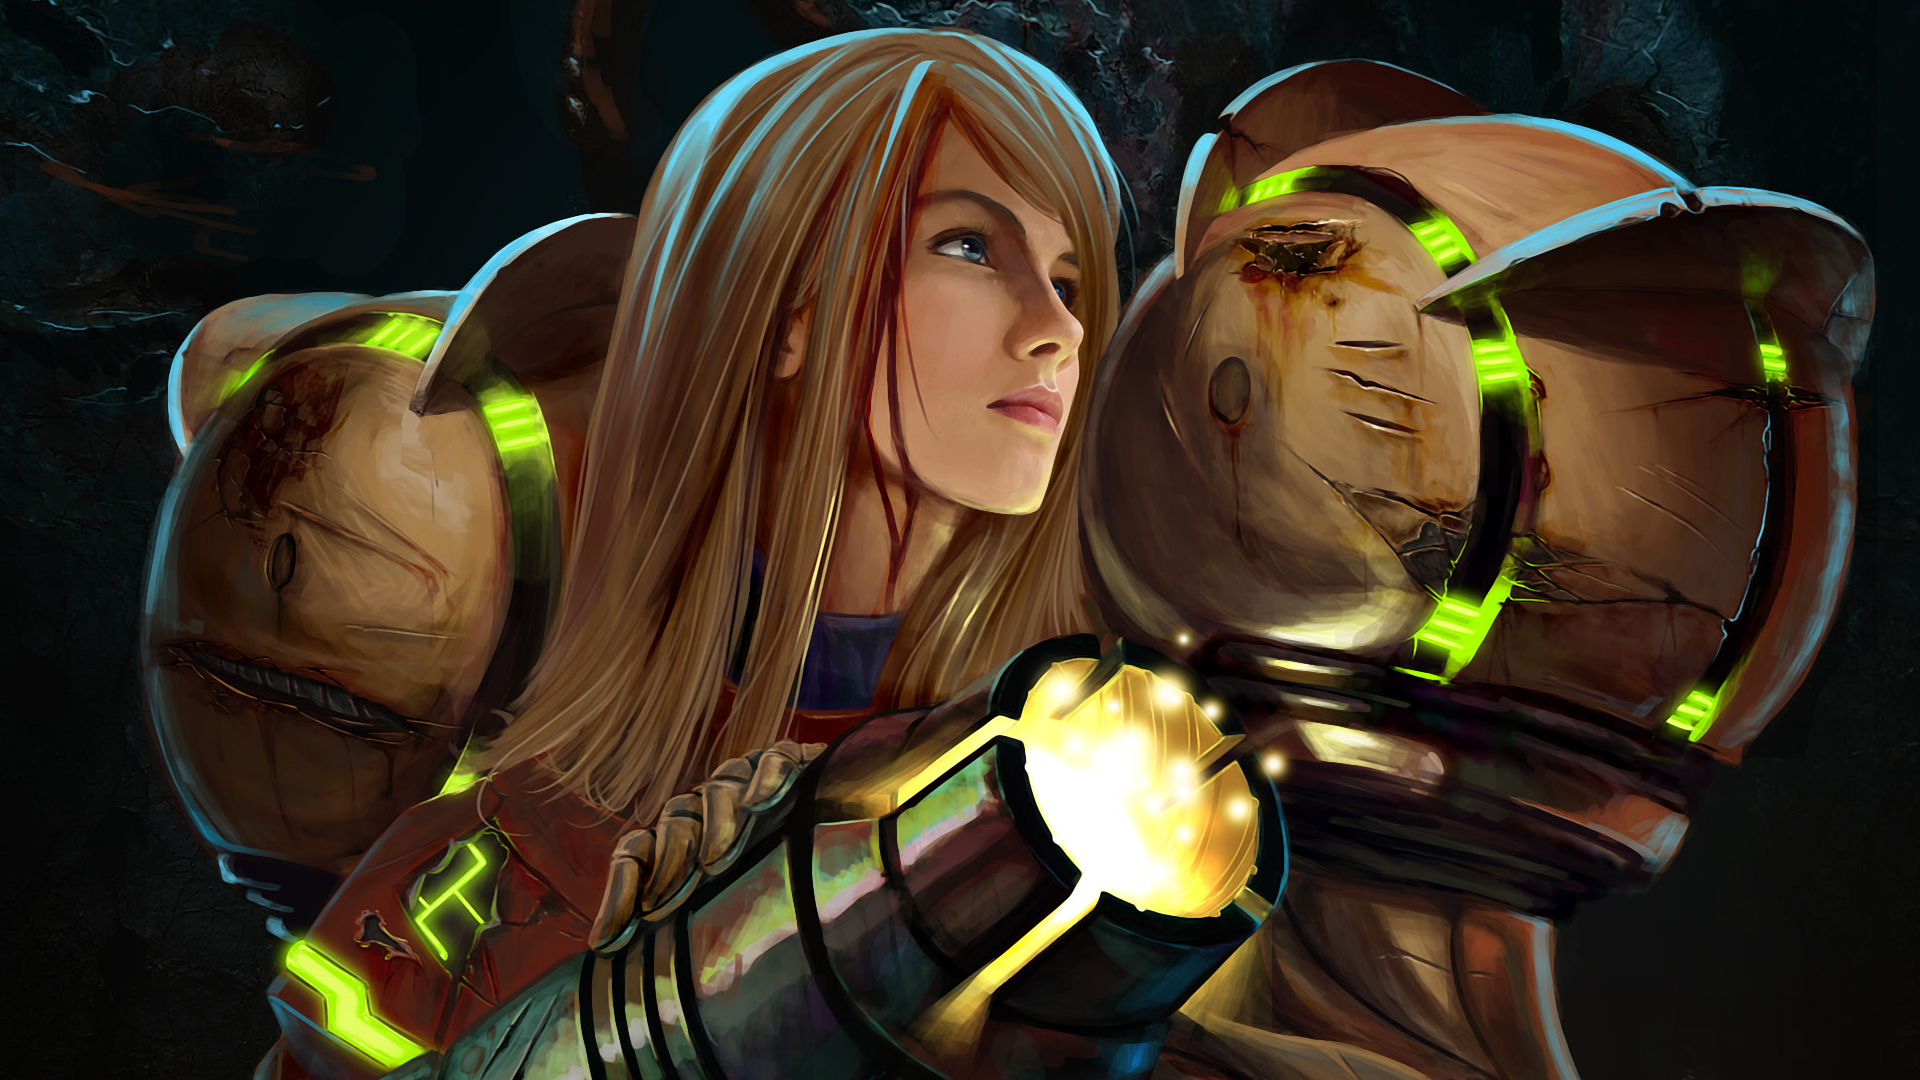 blondes metroid woman futuristic HD Wallpaper